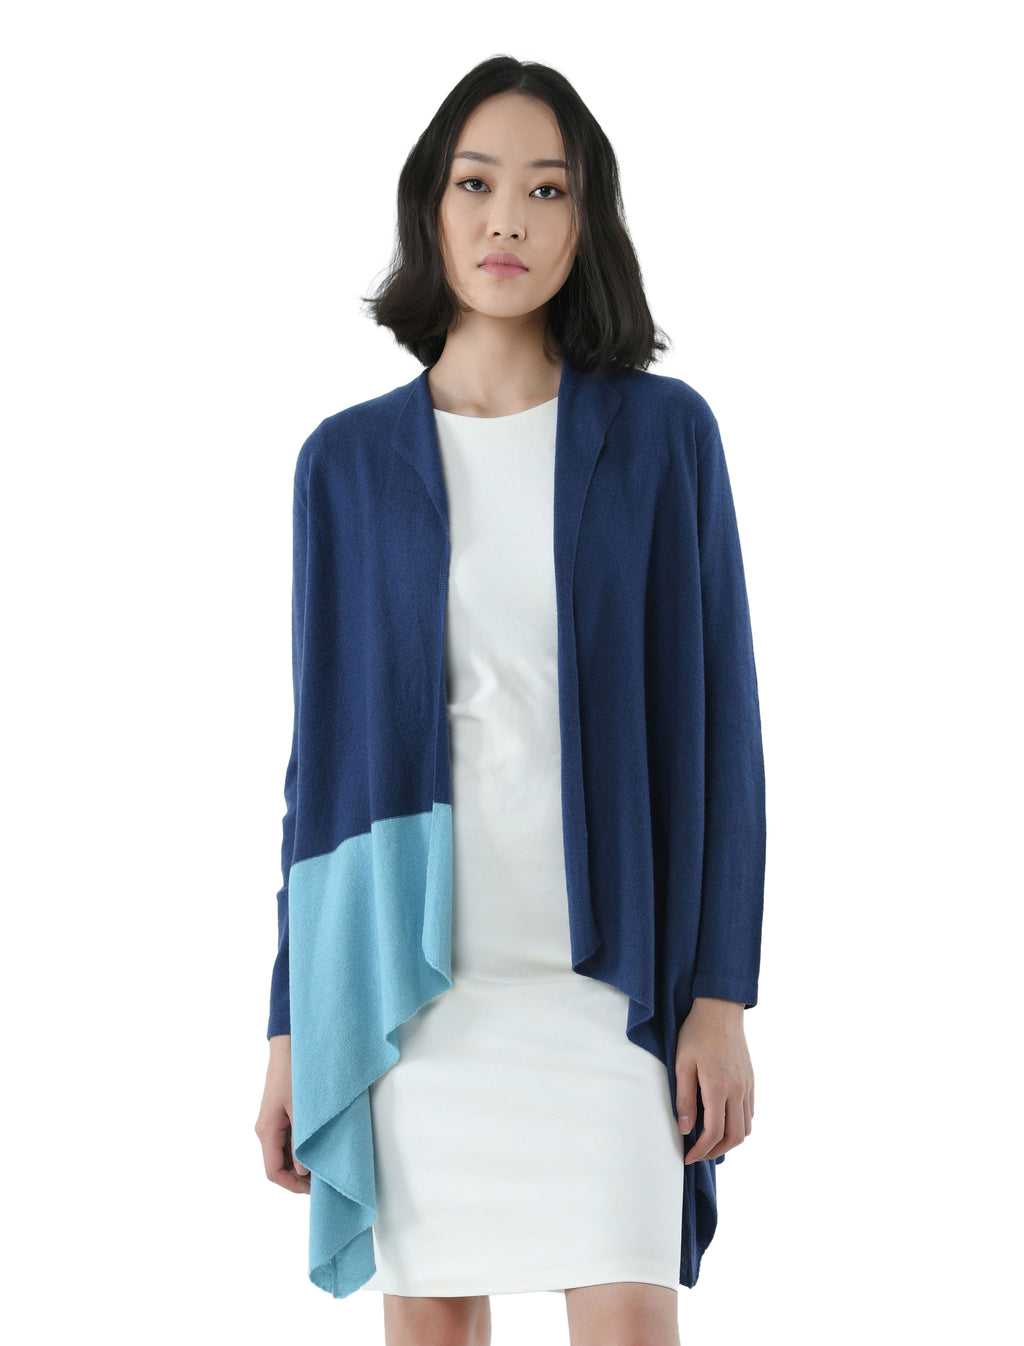 Women's Blue Toned Cashmere Cardigan